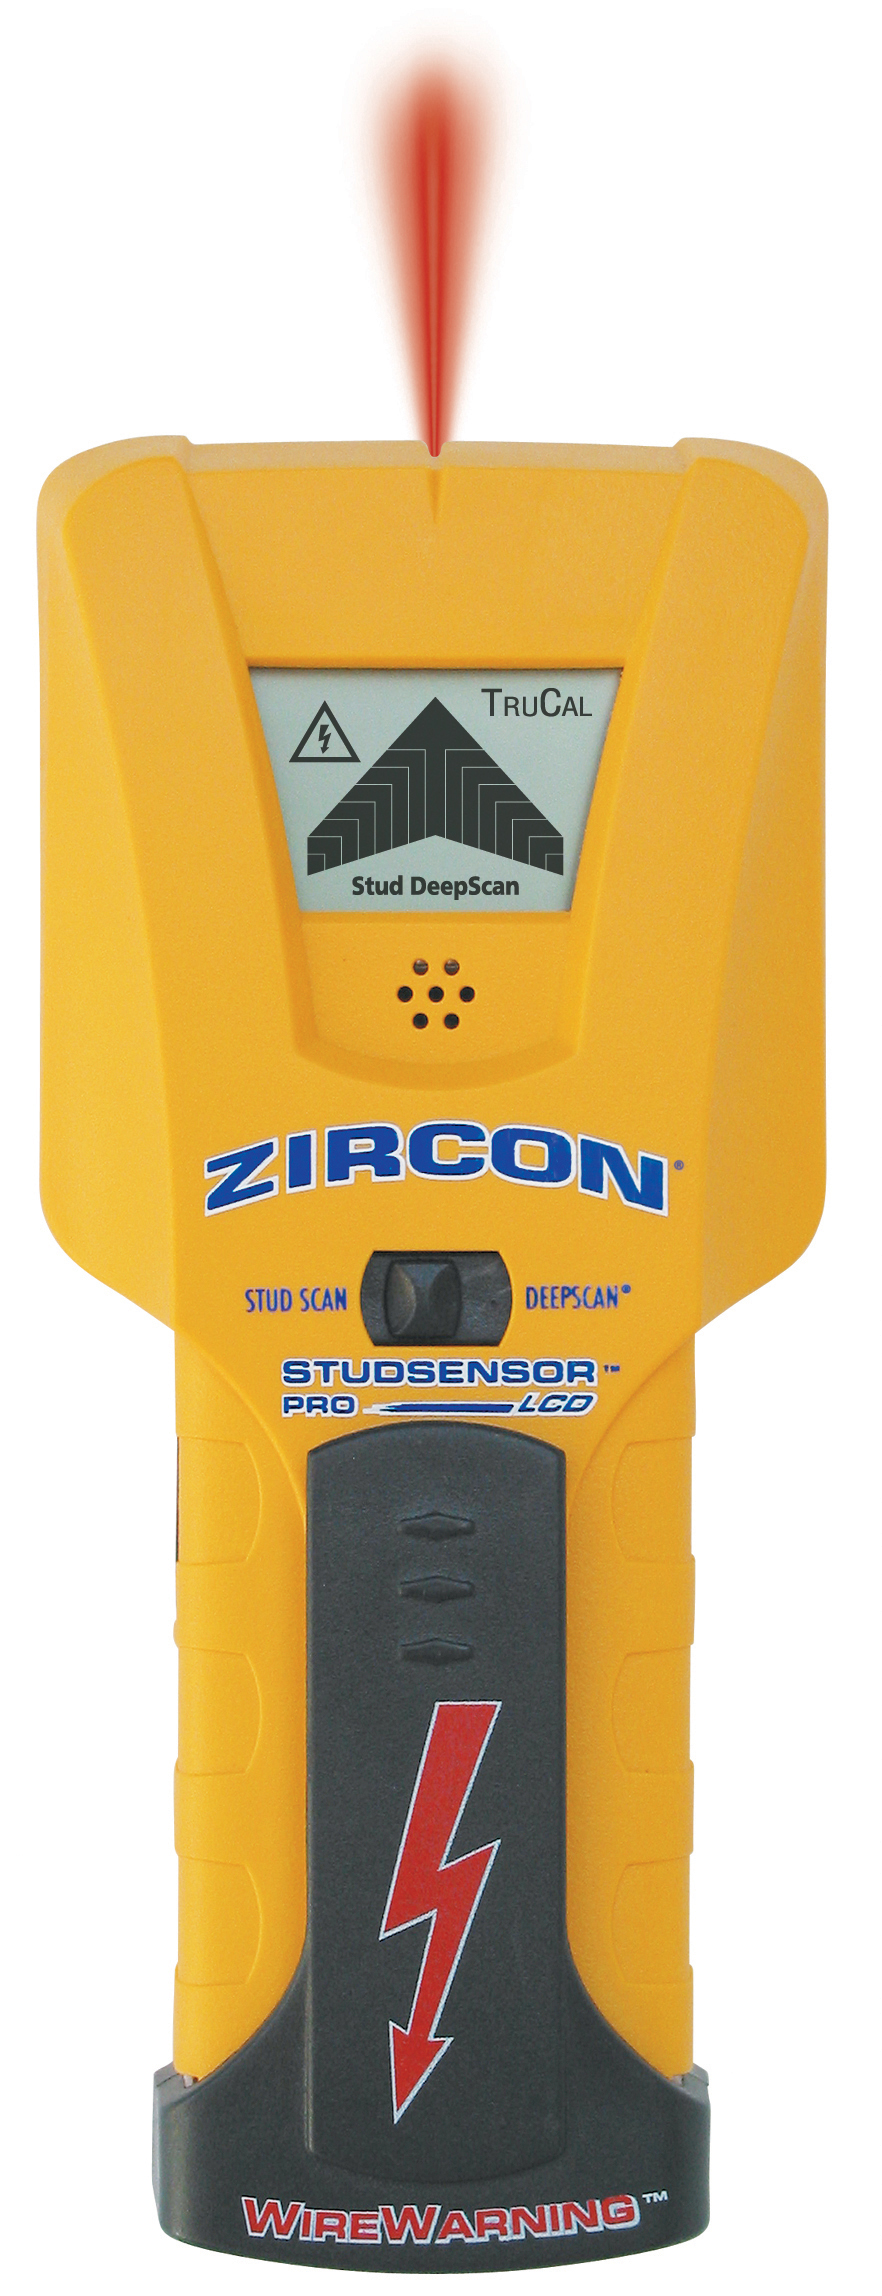 "Zircon 63573 Studsensor E50 Pro LCD, 1-1 2"" Scan Depth by Zircon International Inc"